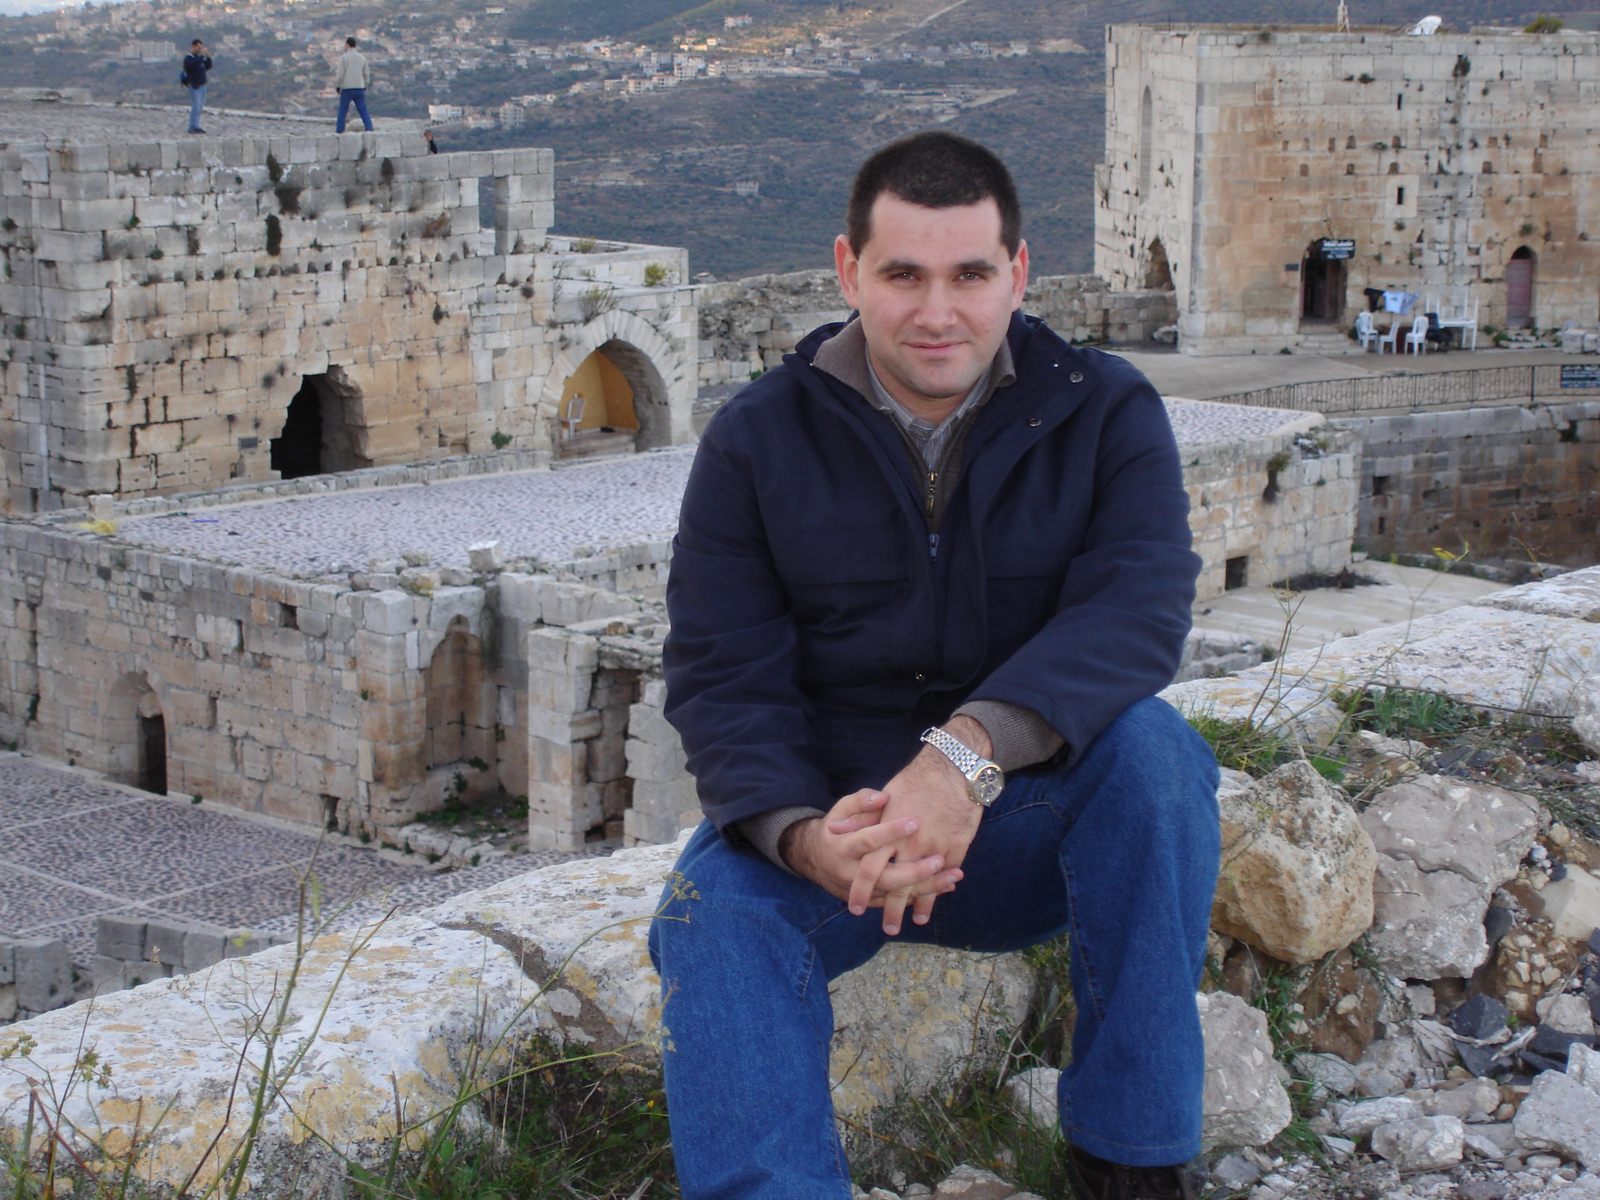 Aboud Dandachi at the 12th Century Krak des Chevaliers in Homs. In 2013, the Syrian government bombed this site, destroying what had been the world's best preserved Crusader Castle. Photo courtesy